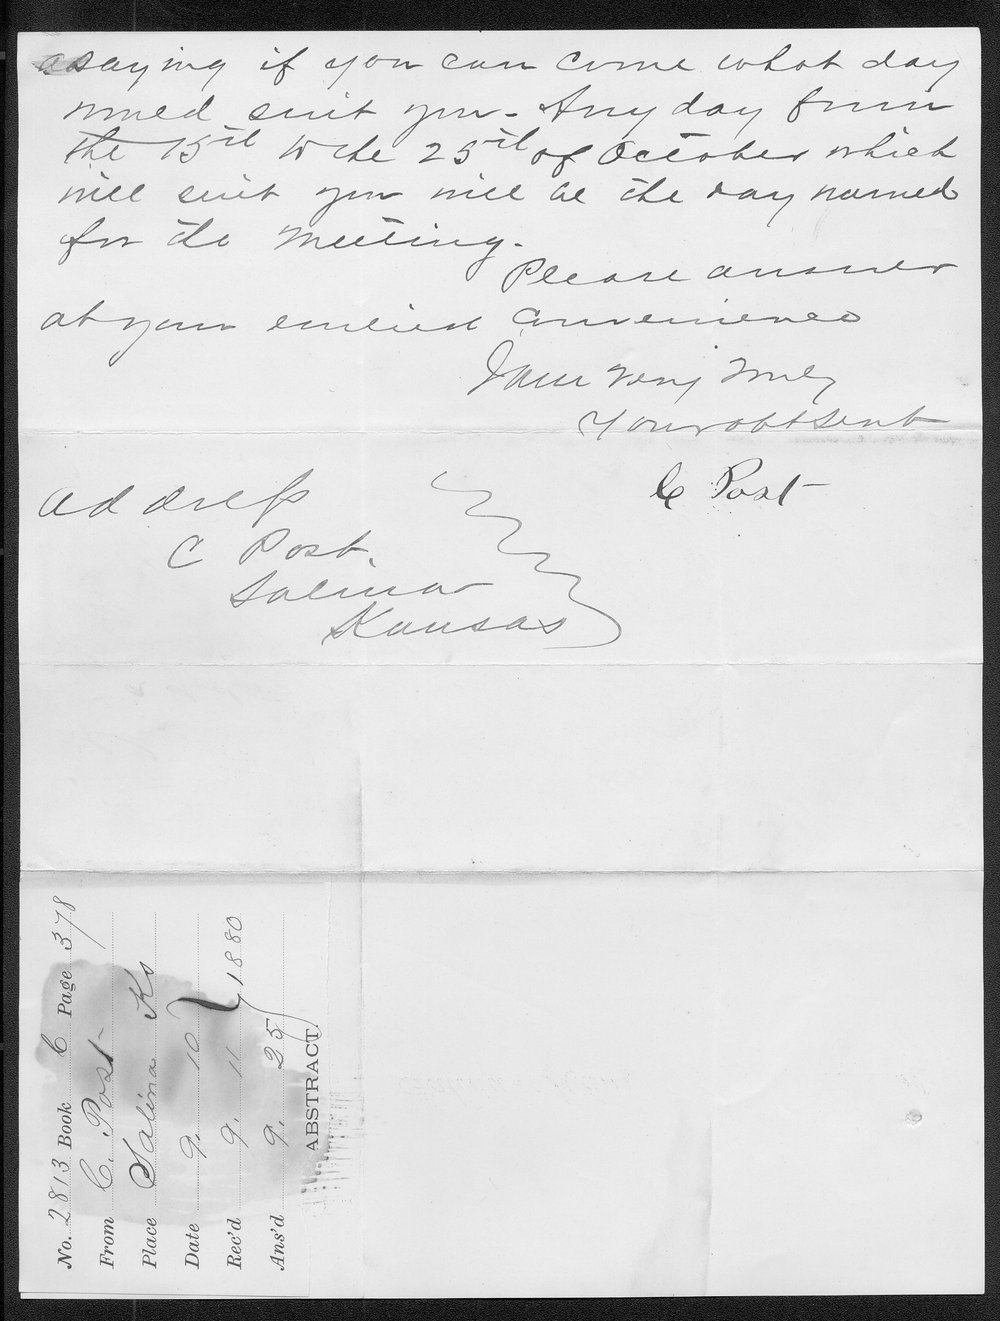 C. Post to Governor John St. John - 2